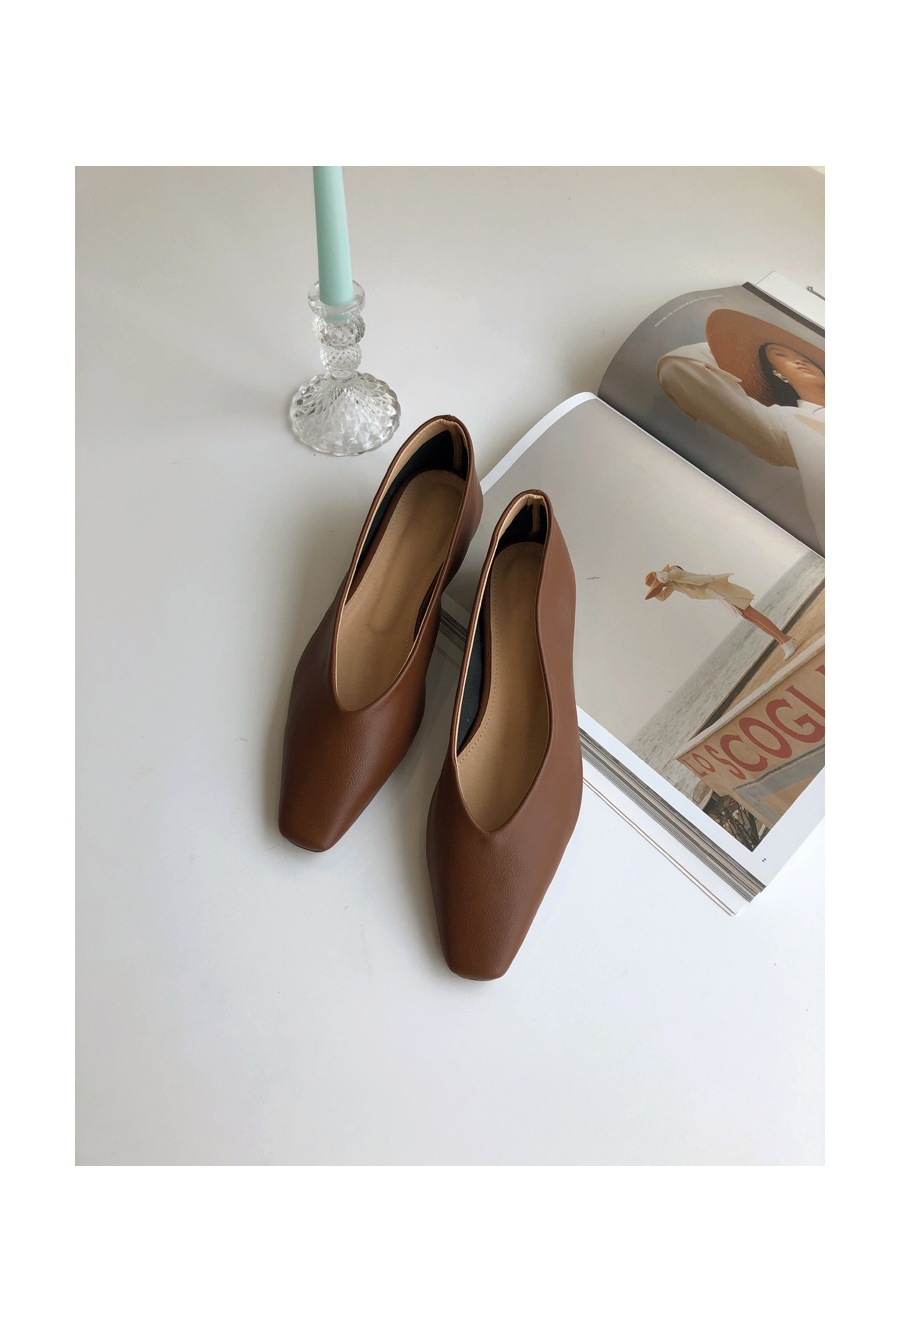 Feminan shoes brown 225 / beige 245